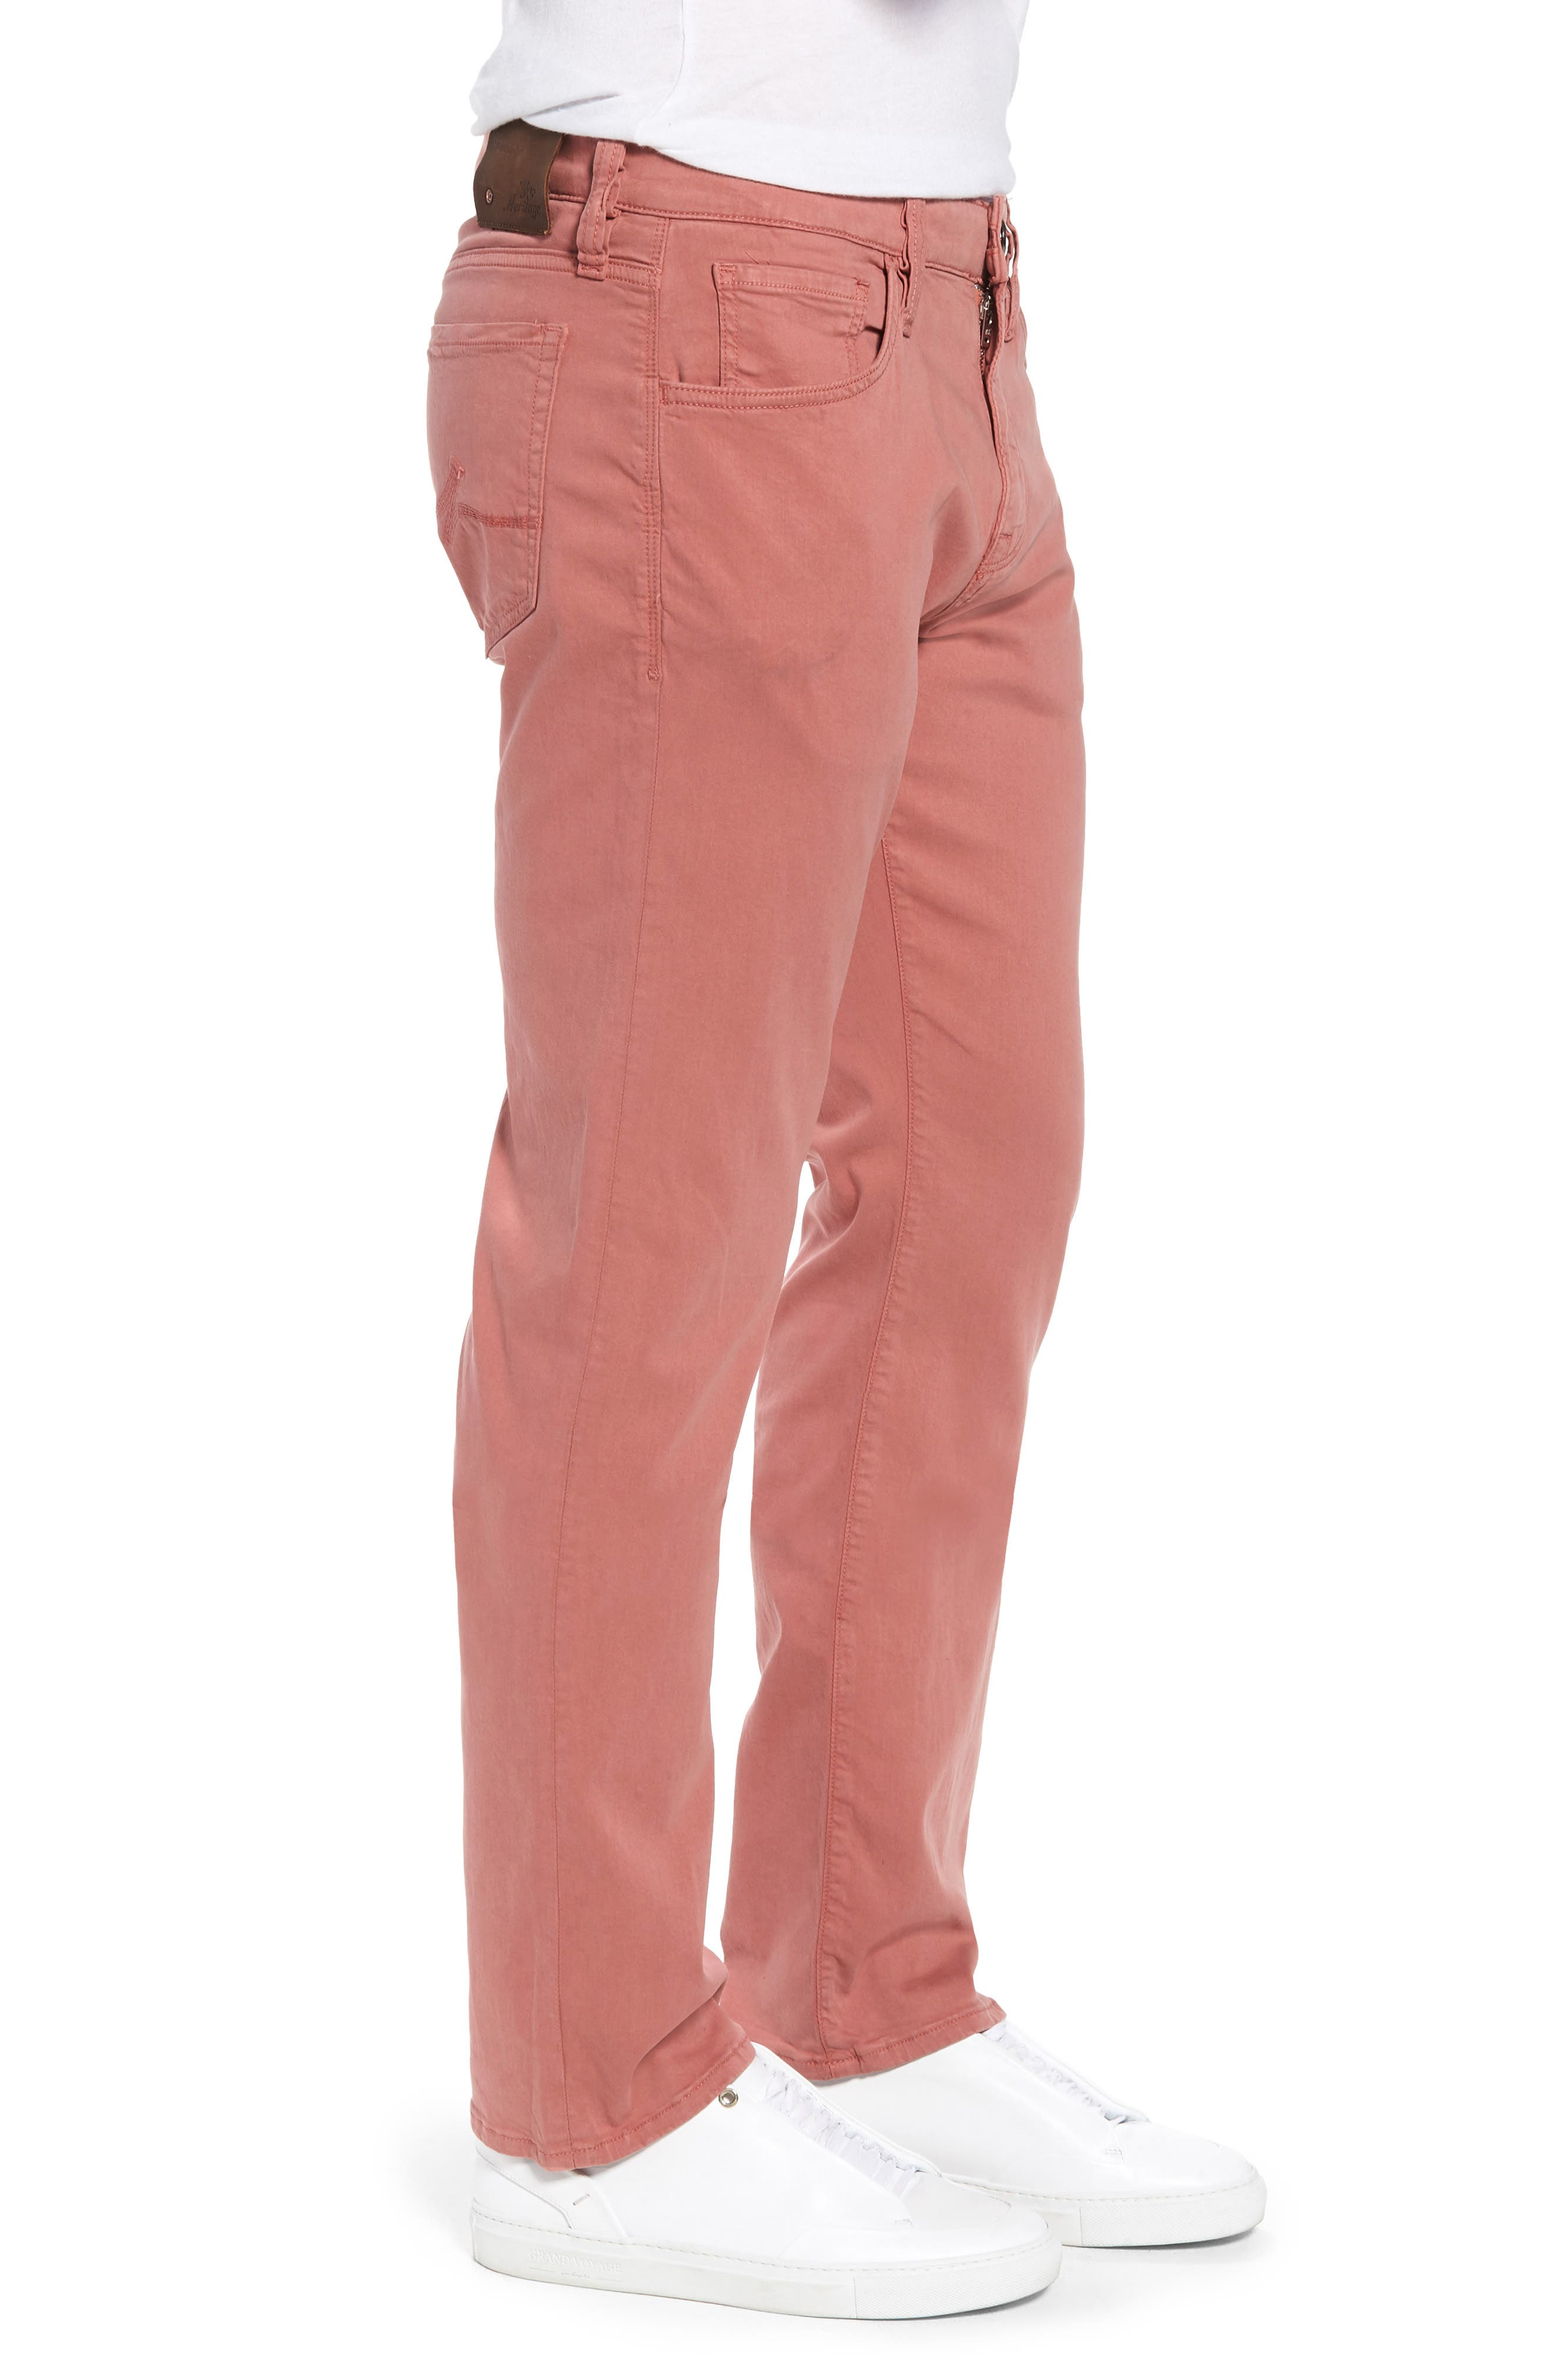 Courage Straight Leg Twill Pants,                             Alternate thumbnail 3, color,                             Brick Twill